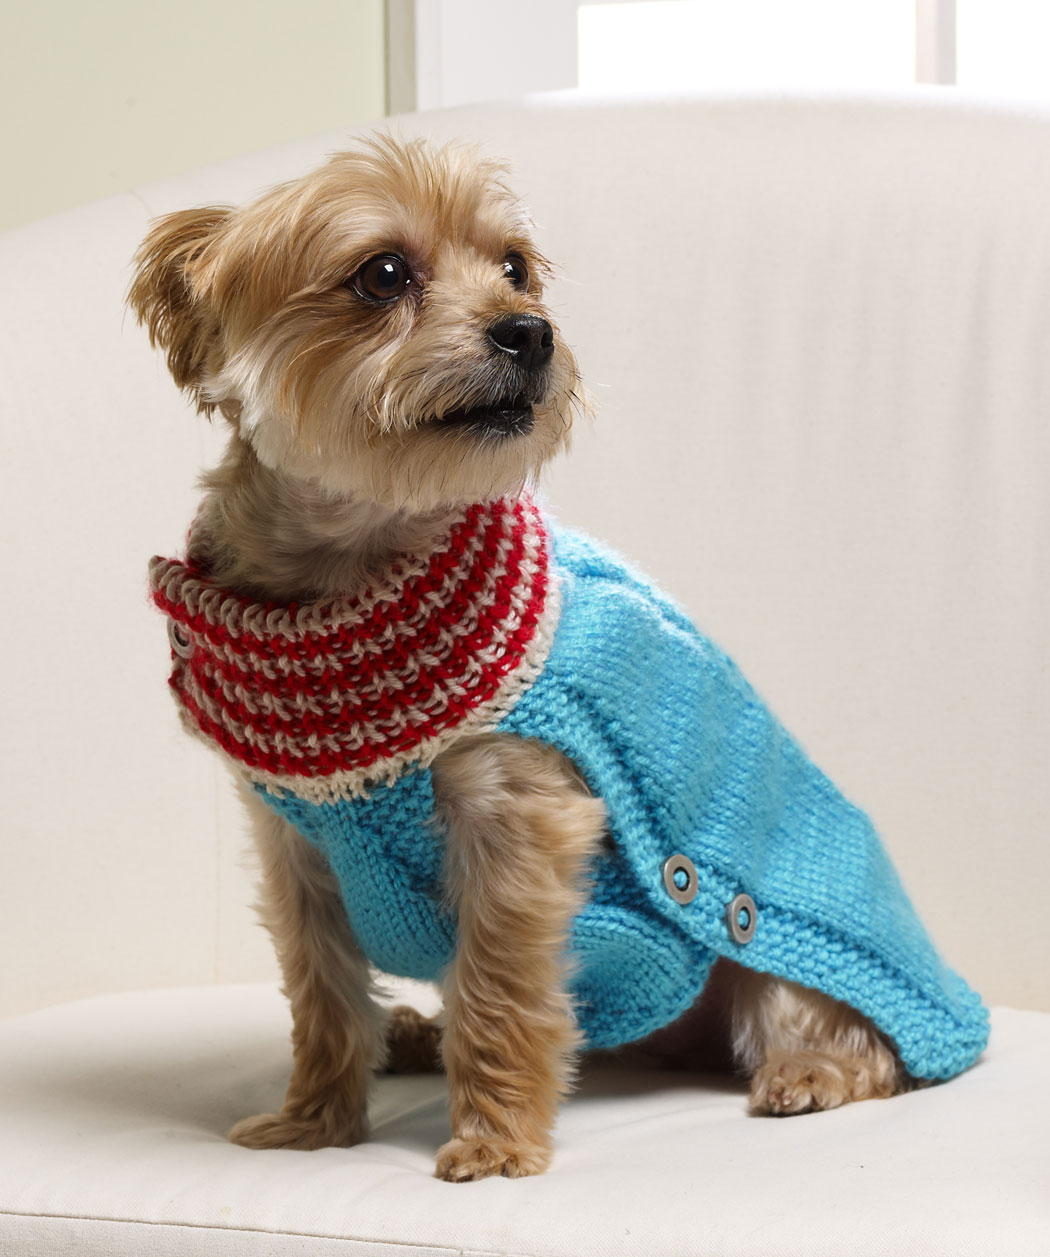 Dog sweater knitting pattern a knitting blog - Knitting for dogs sweaters ...